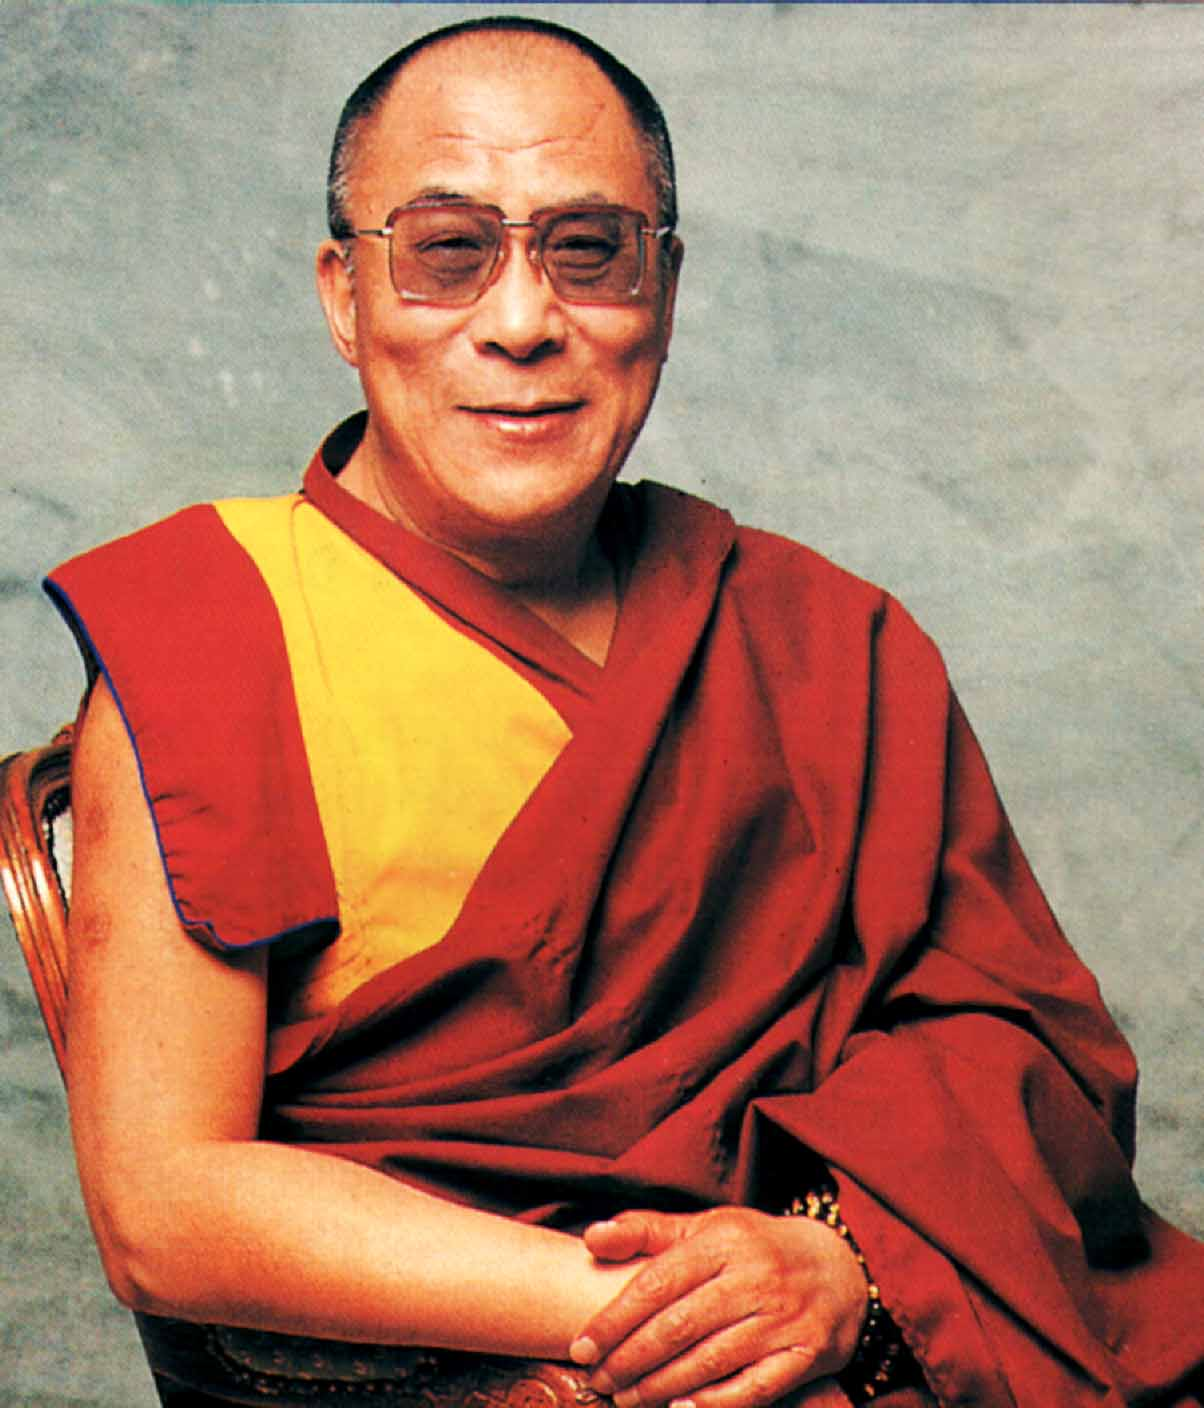 dali lama